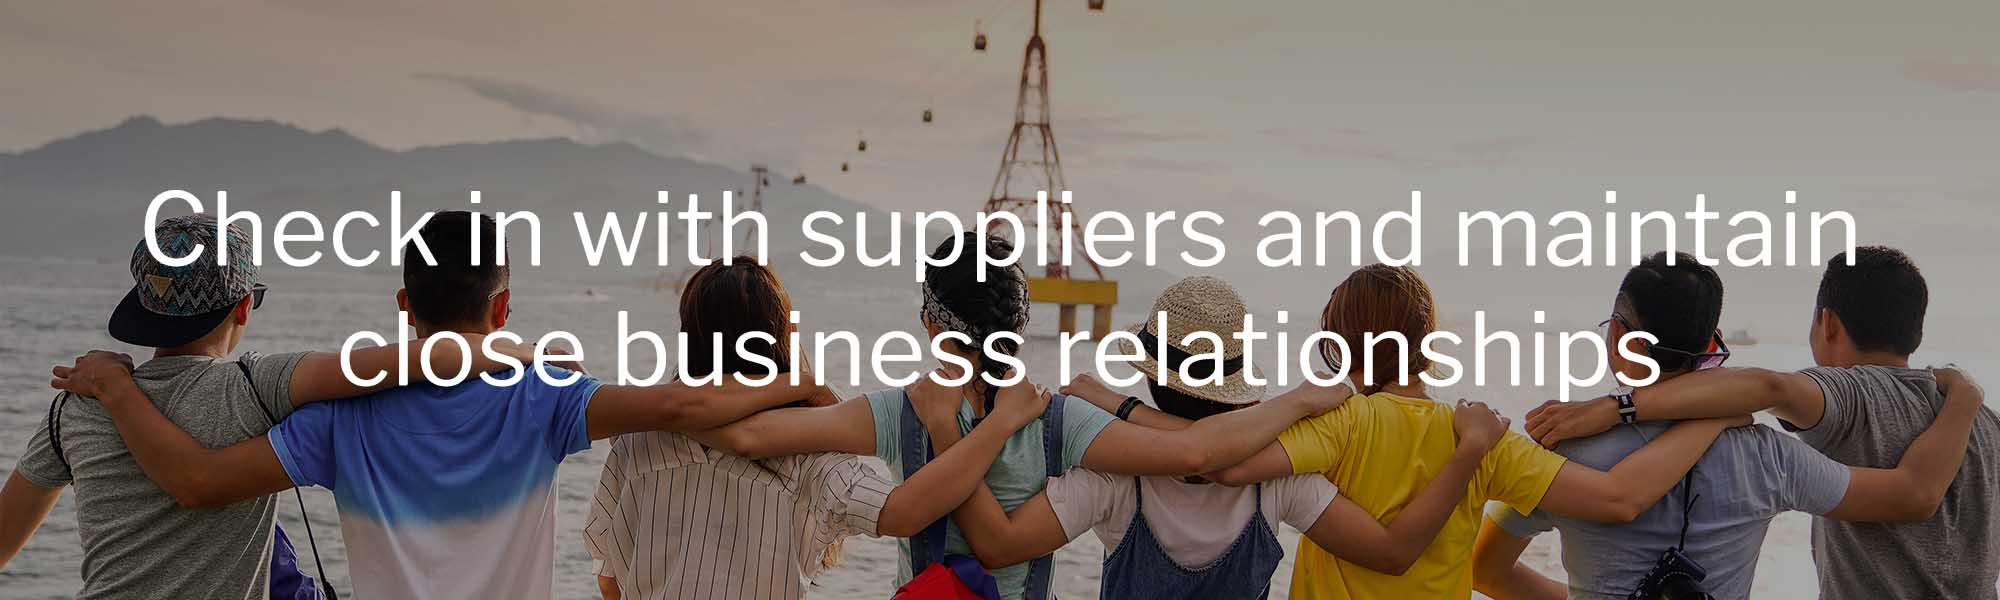 supplier relationships in tourism